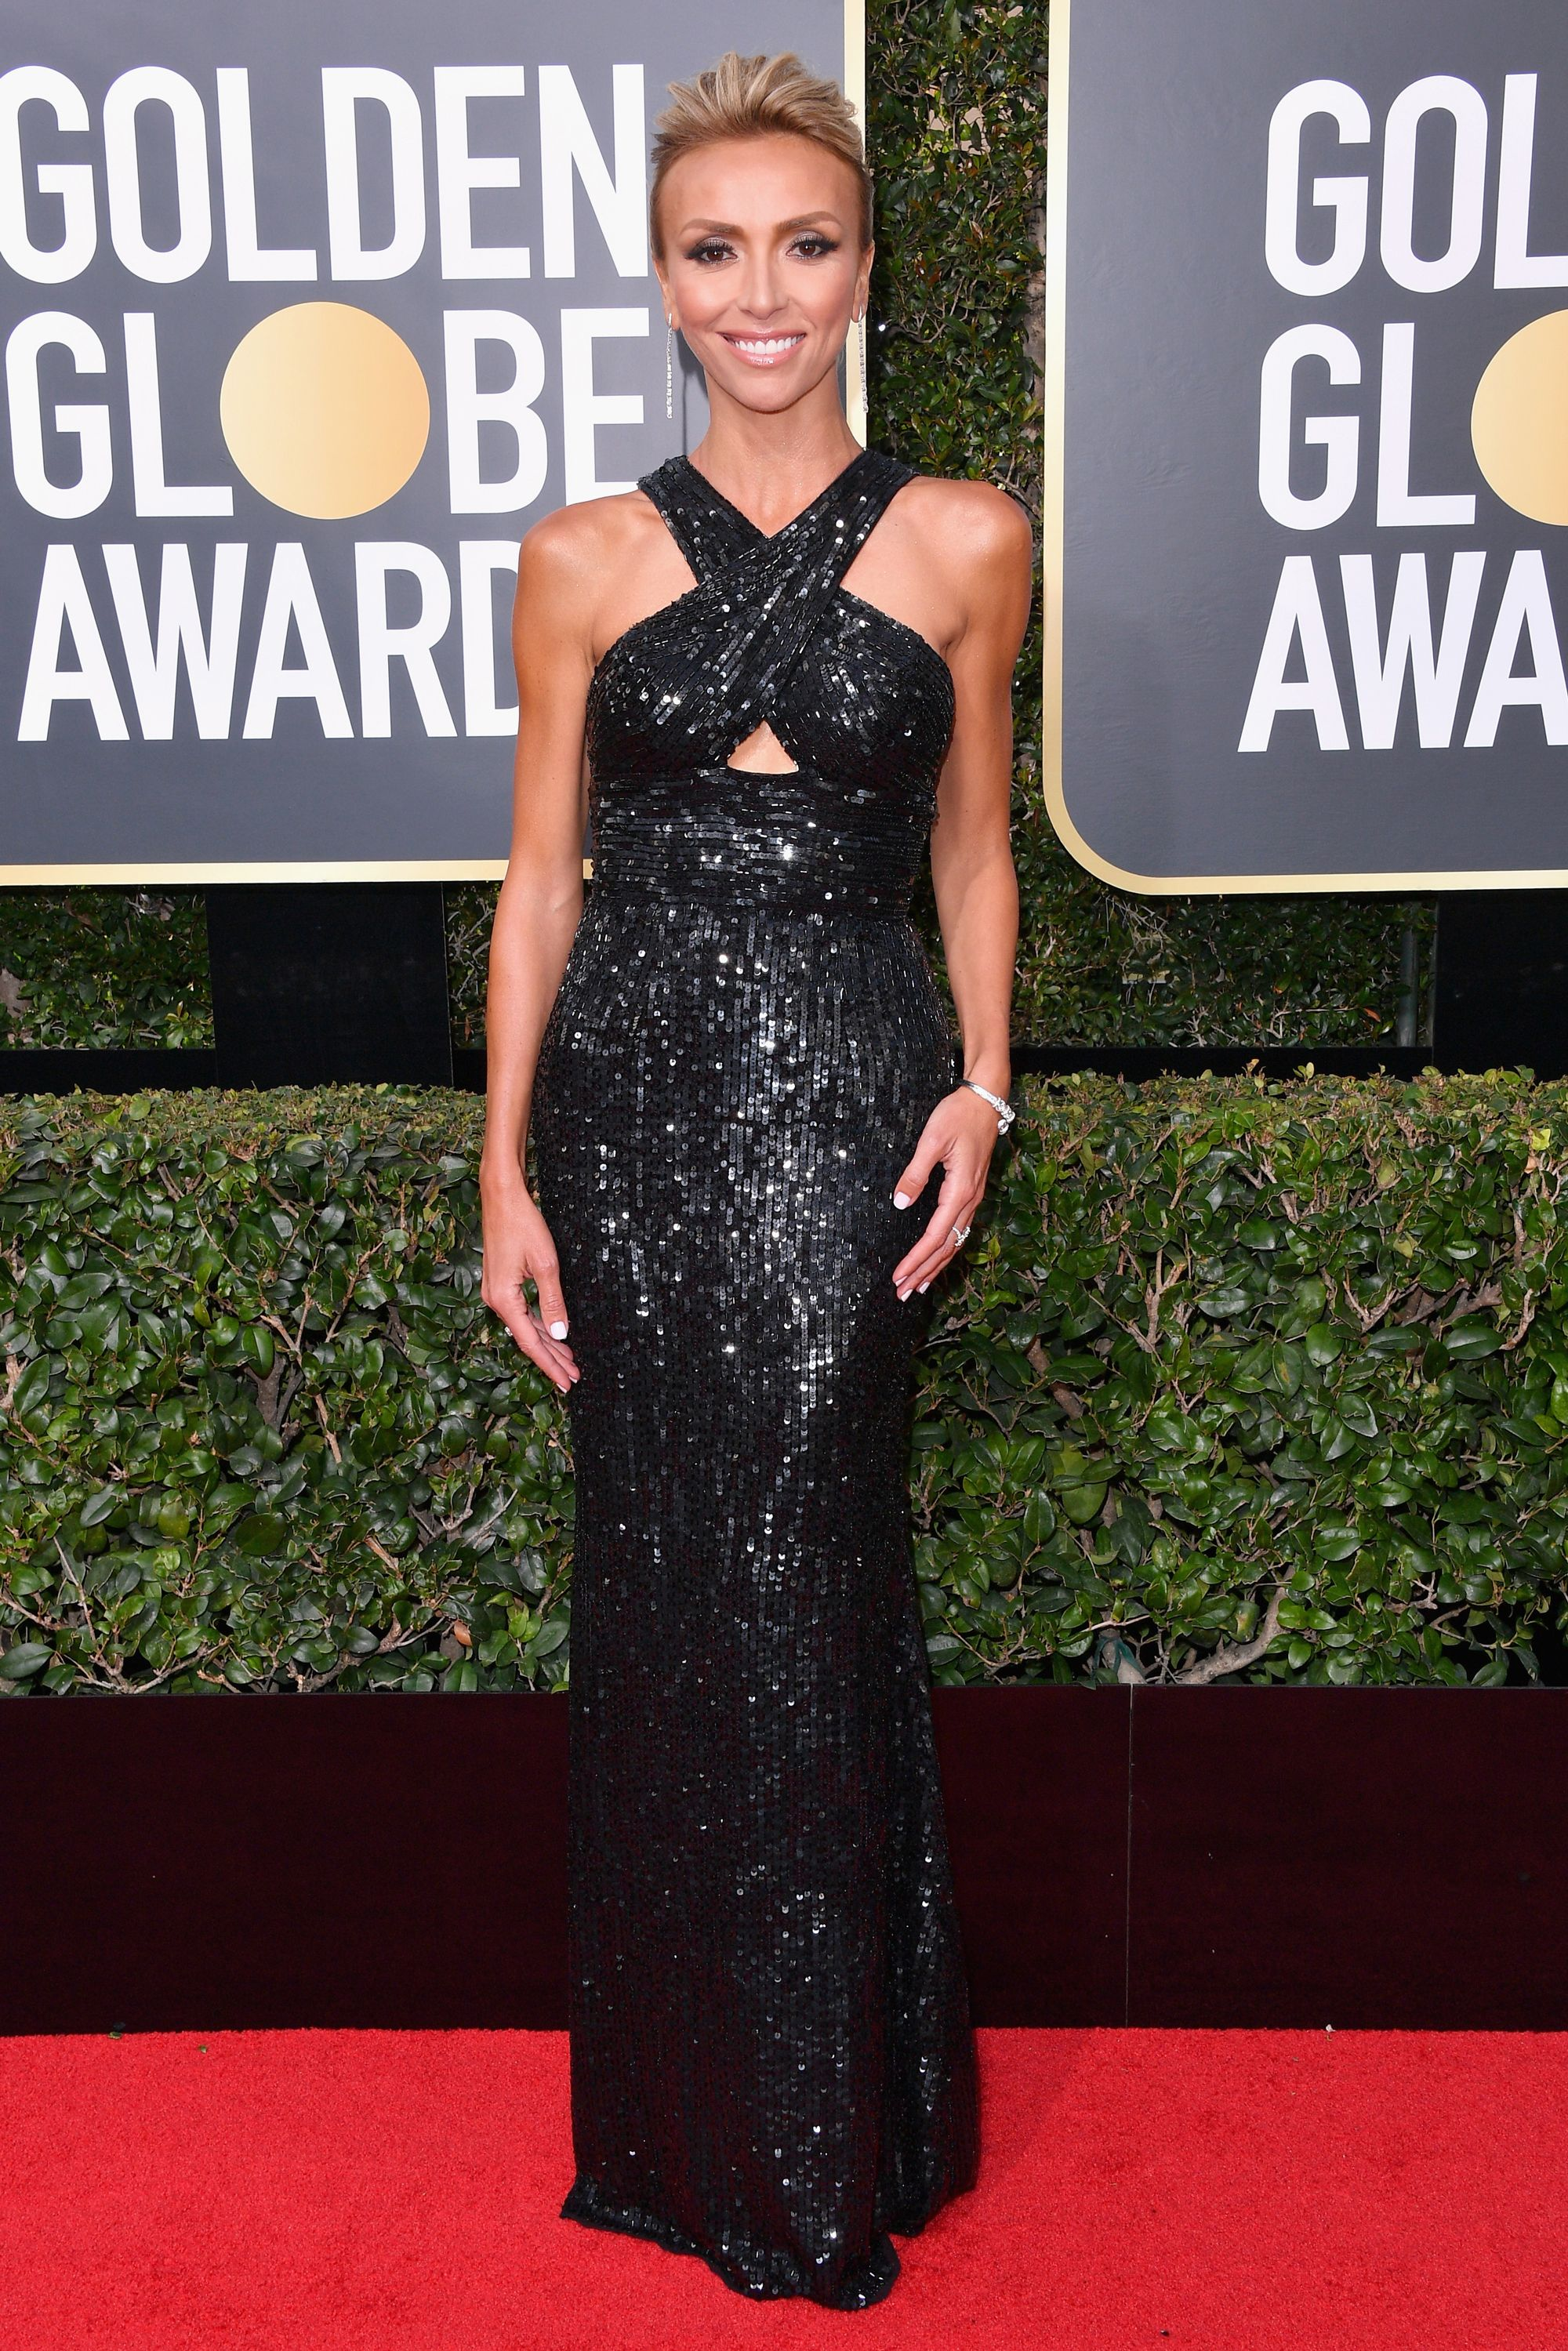 Golden Globes Fashion And All Looks From The Red Carpet Golden Globes Dresses Red Carpet Gowns Golden Globes Fashion